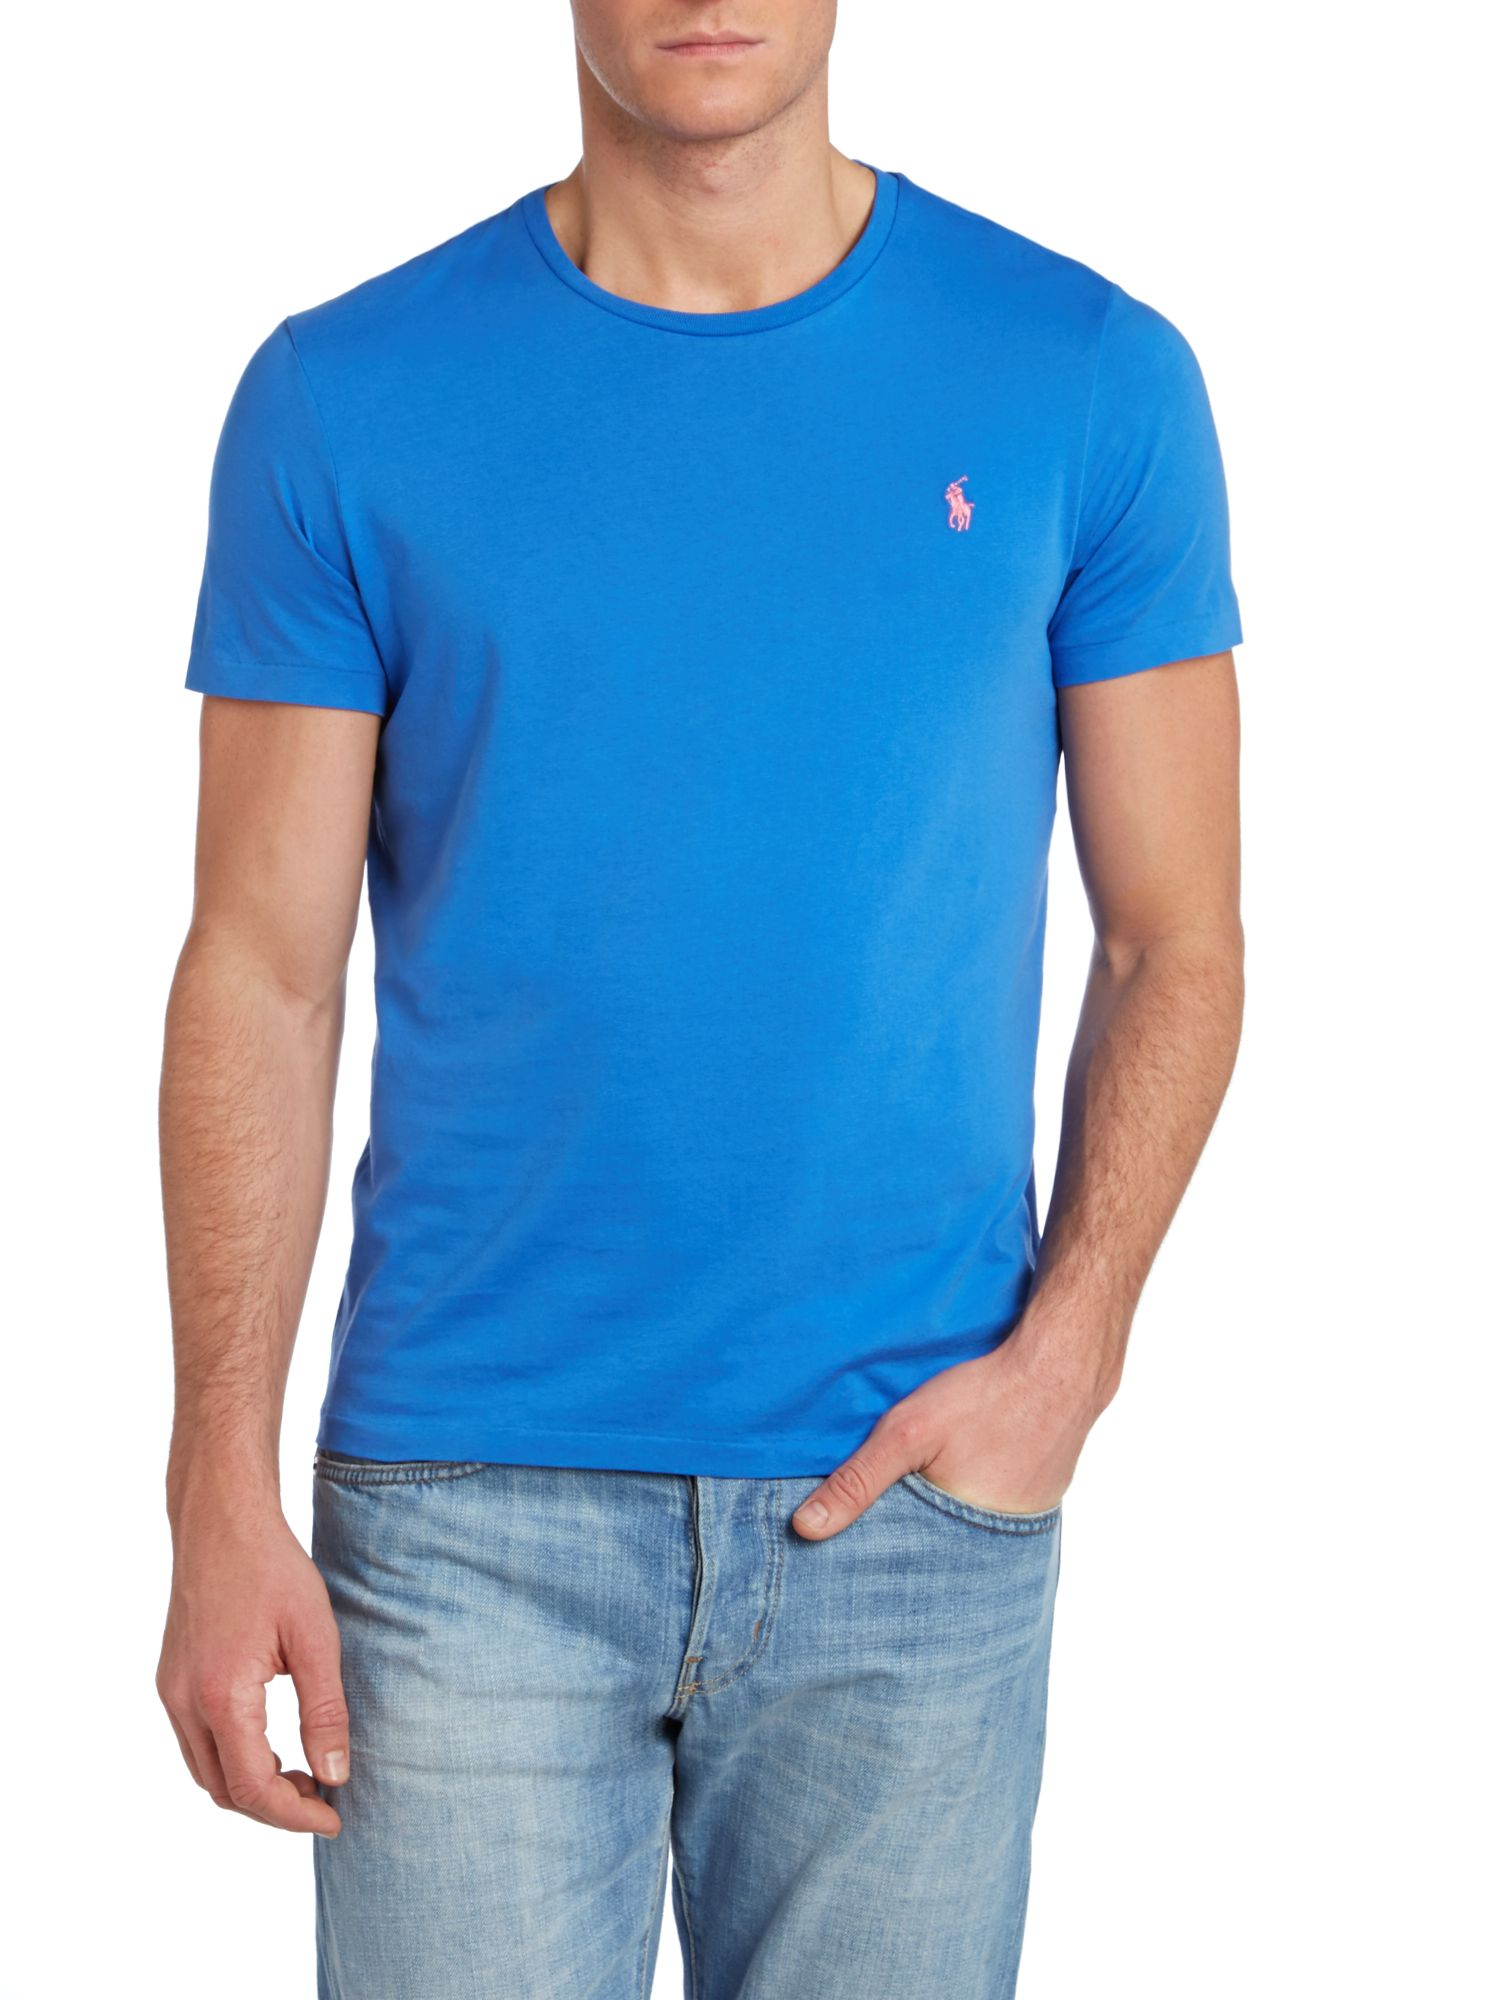 Polo ralph lauren custom fit crew neck short sleeve t for Custom fit t shirts